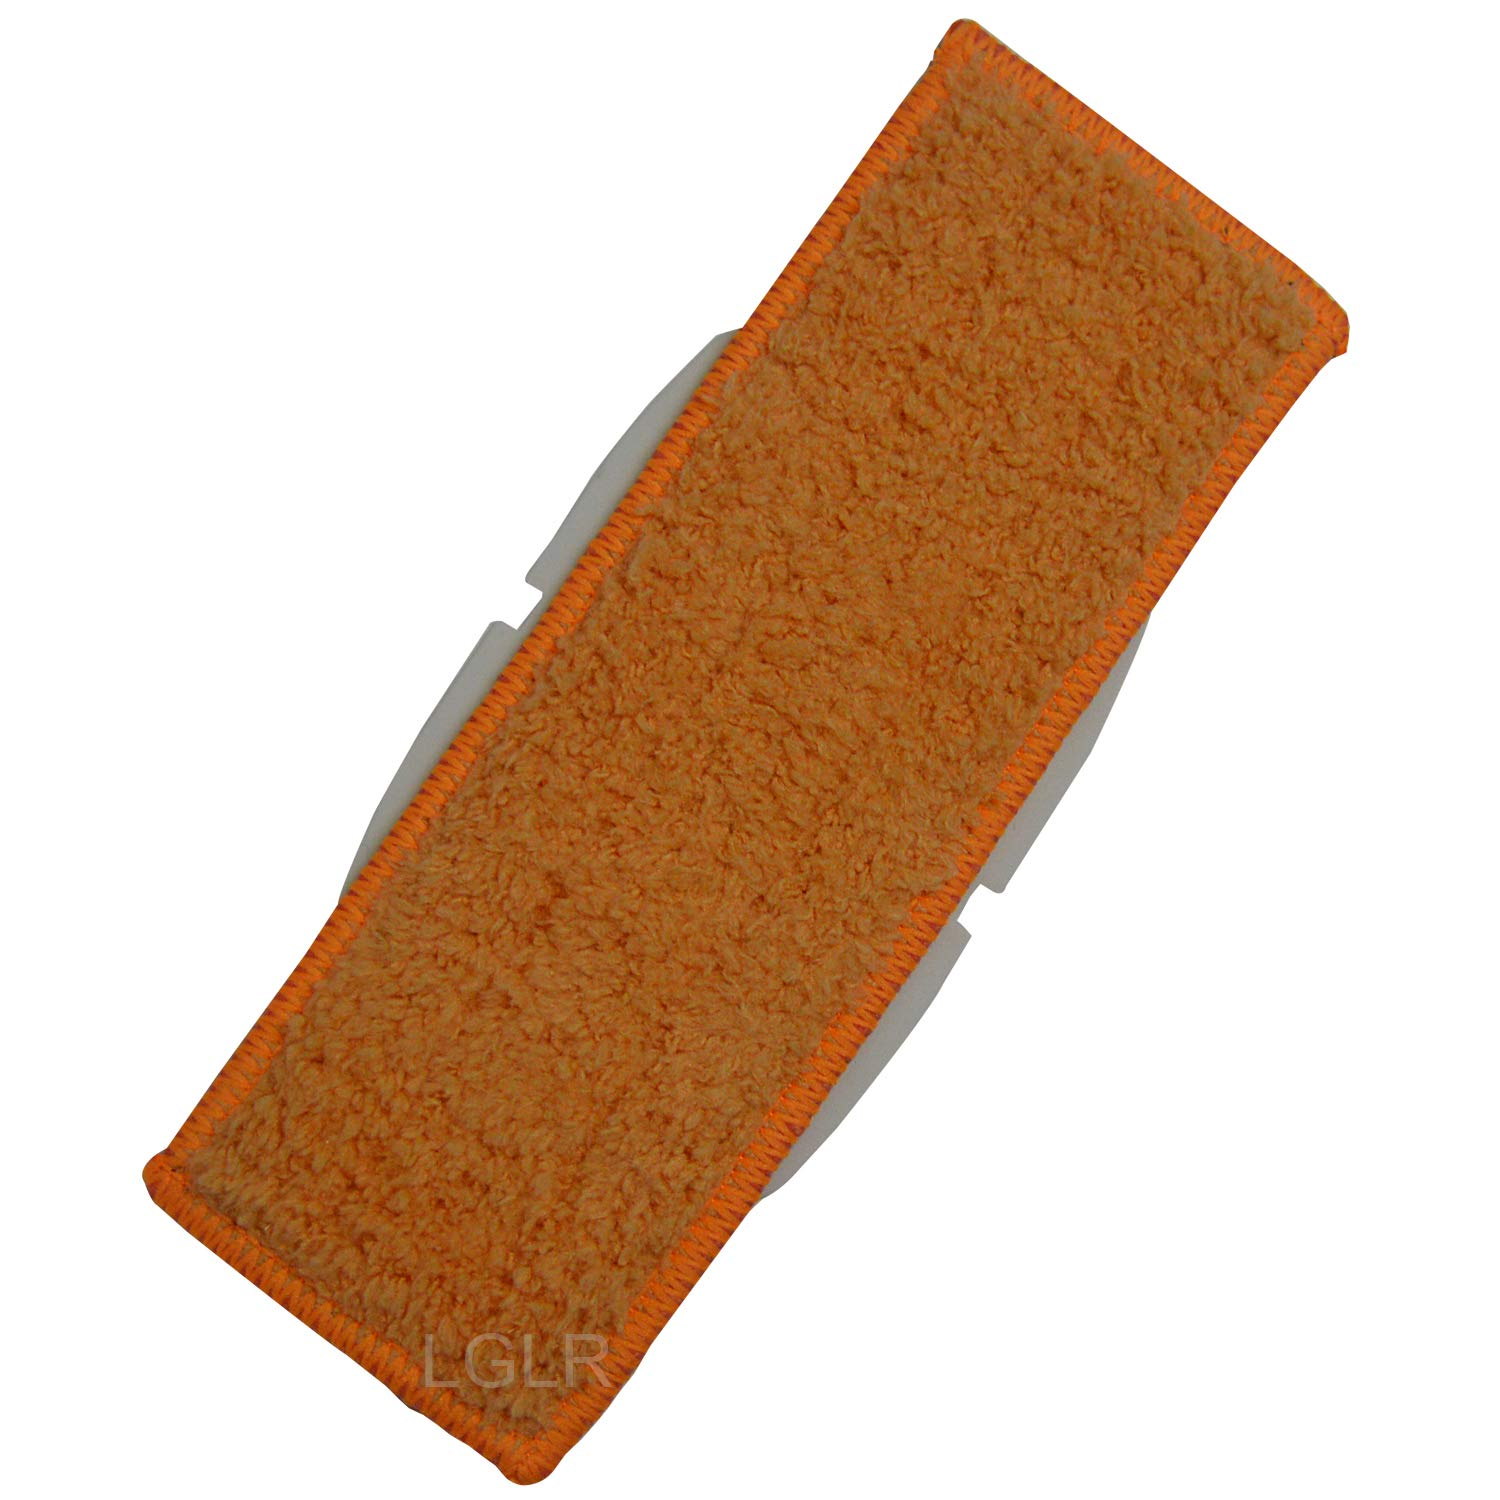 2 Wet Pads, 2 Dry Pads, 2 Damp Pads 6 Pack Washable Reusable Mopping Pads for iRobot Braava Jet 240 241